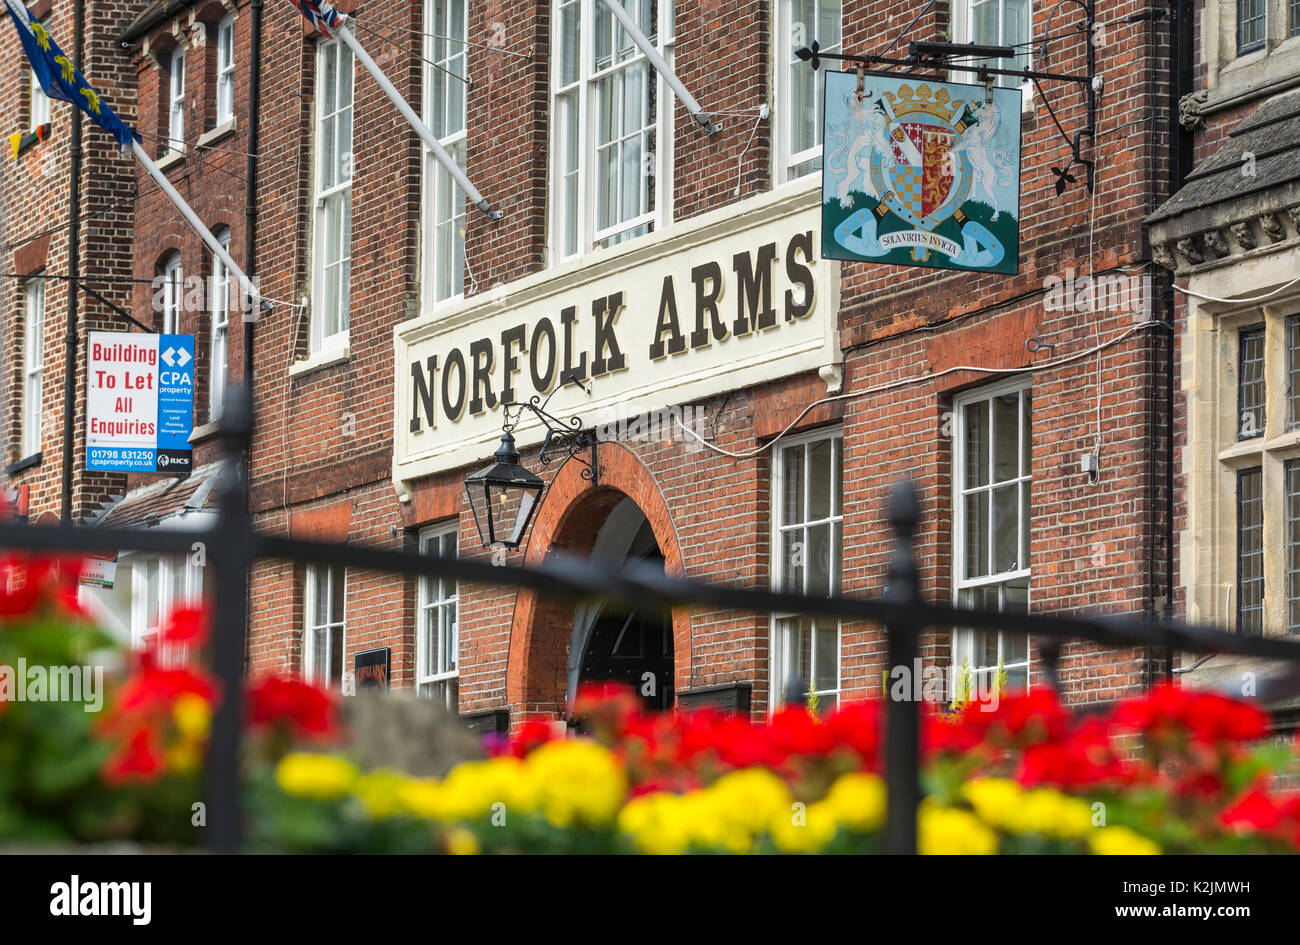 norfolk-arms-hotel-in-the-high-street-in